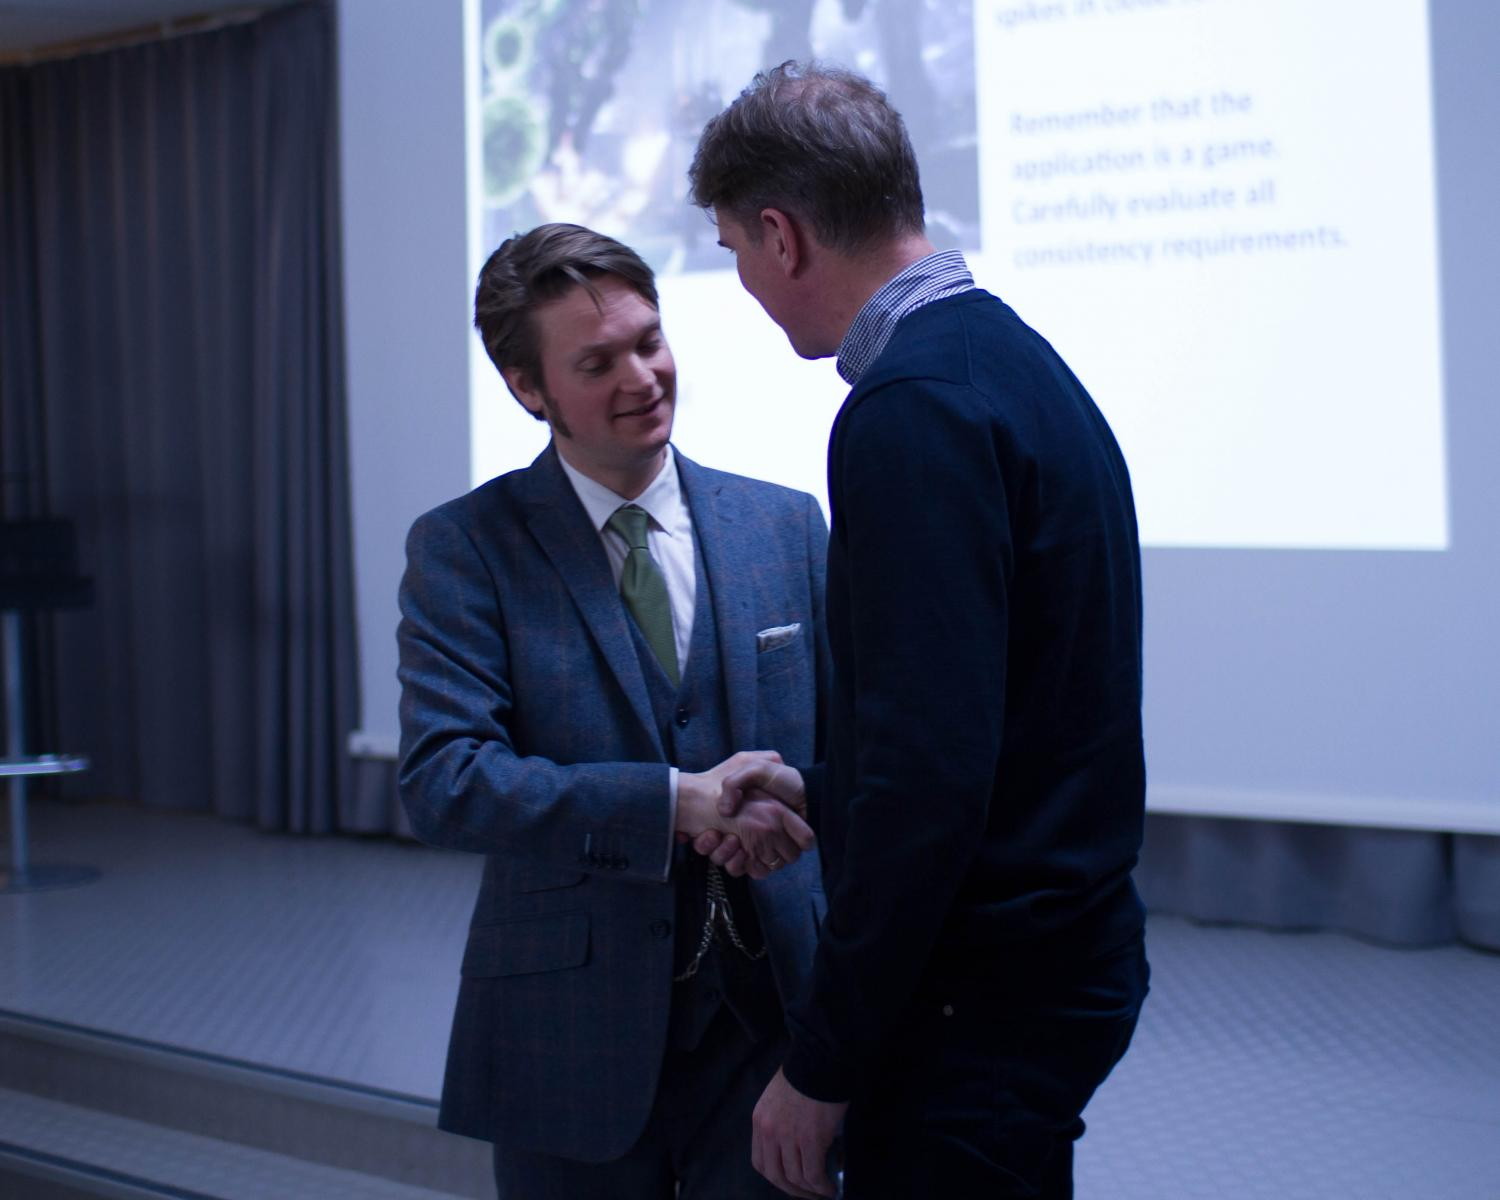 Kjetil Raaen is being congratulated, having defended his PhD